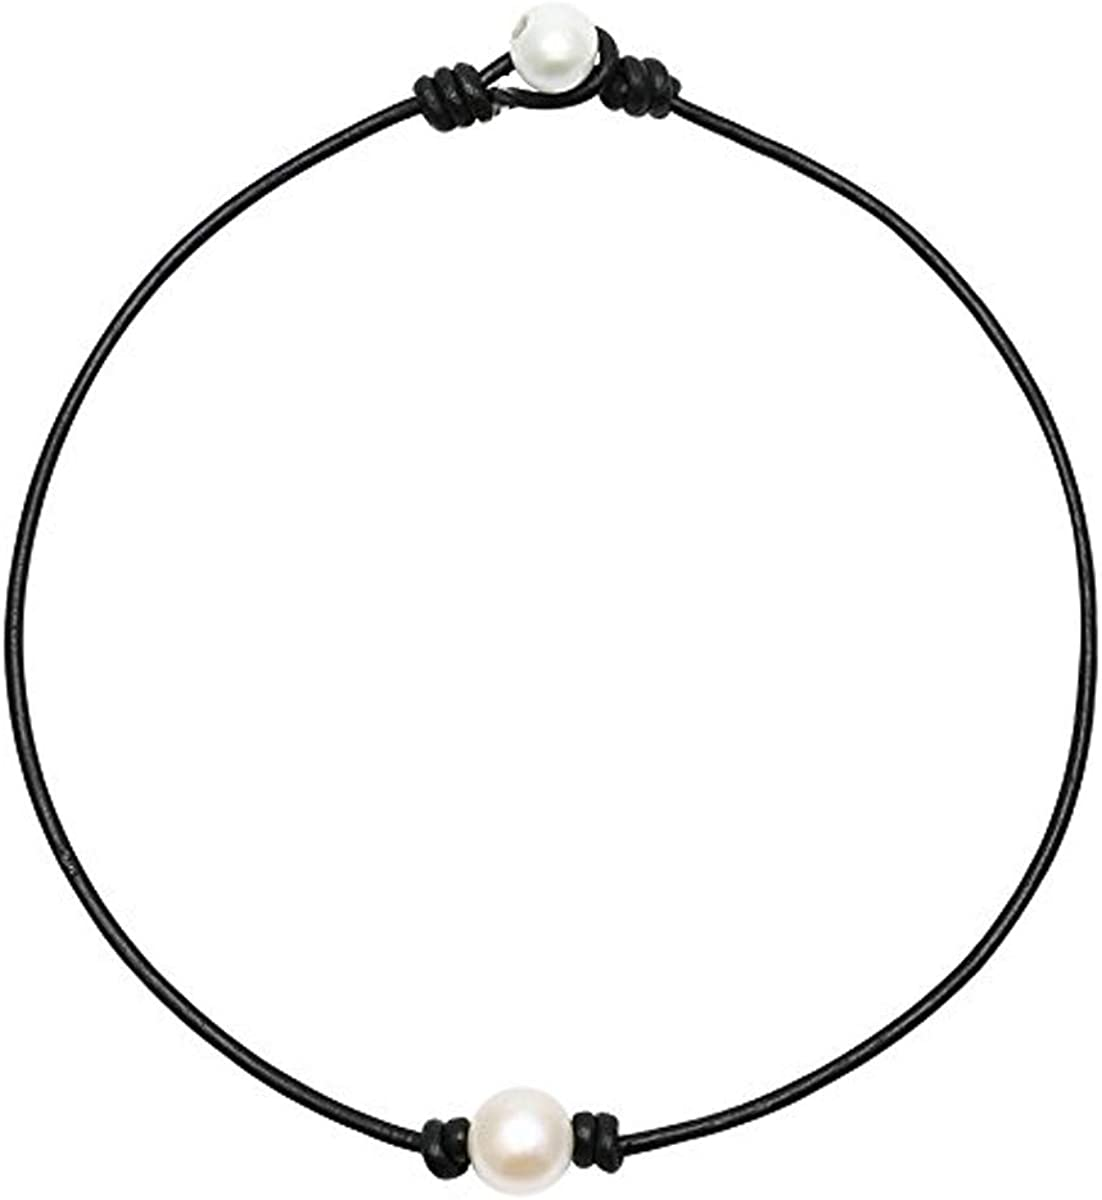 2PCS Y2k Jewelry Necklace Single Pearl and Three Pearl Choker Necklace with Black or Brown Leather